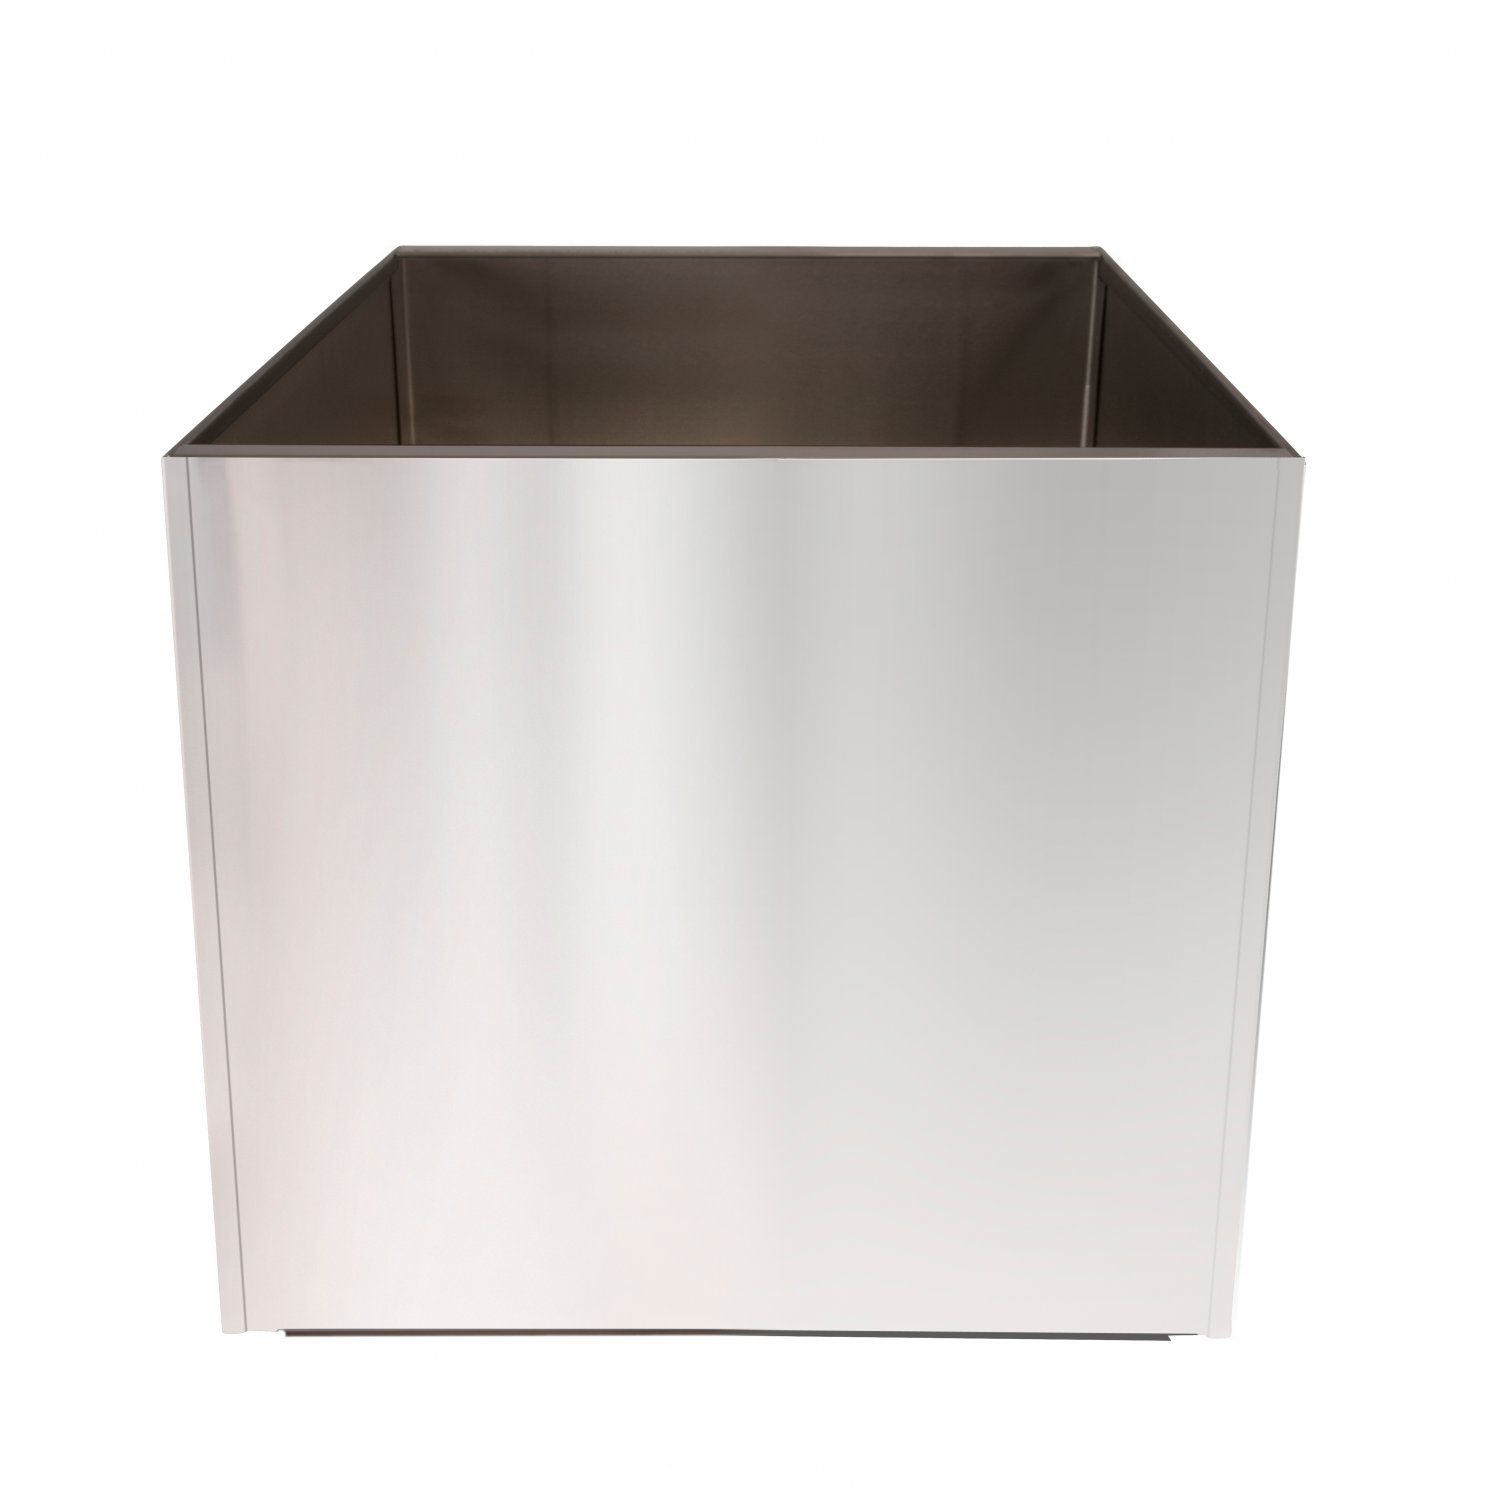 Stainless Steel 20 Inch Extra Large Planter Square